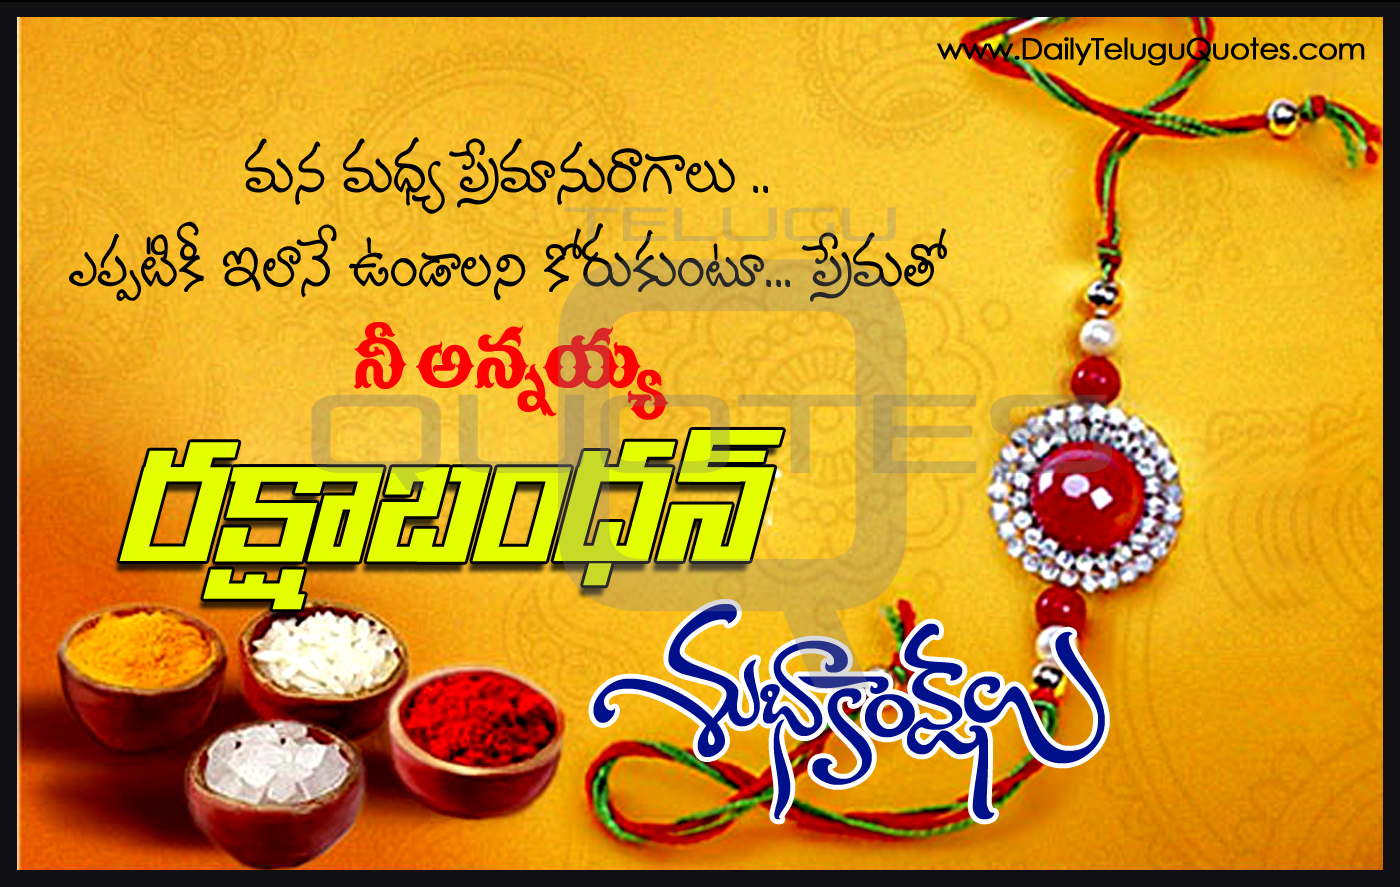 Happy rakha bandhan greetings in telugu quotes images best wishes raksha bandhan quotes in telugu hd pictures rakhi kristyandbryce Image collections